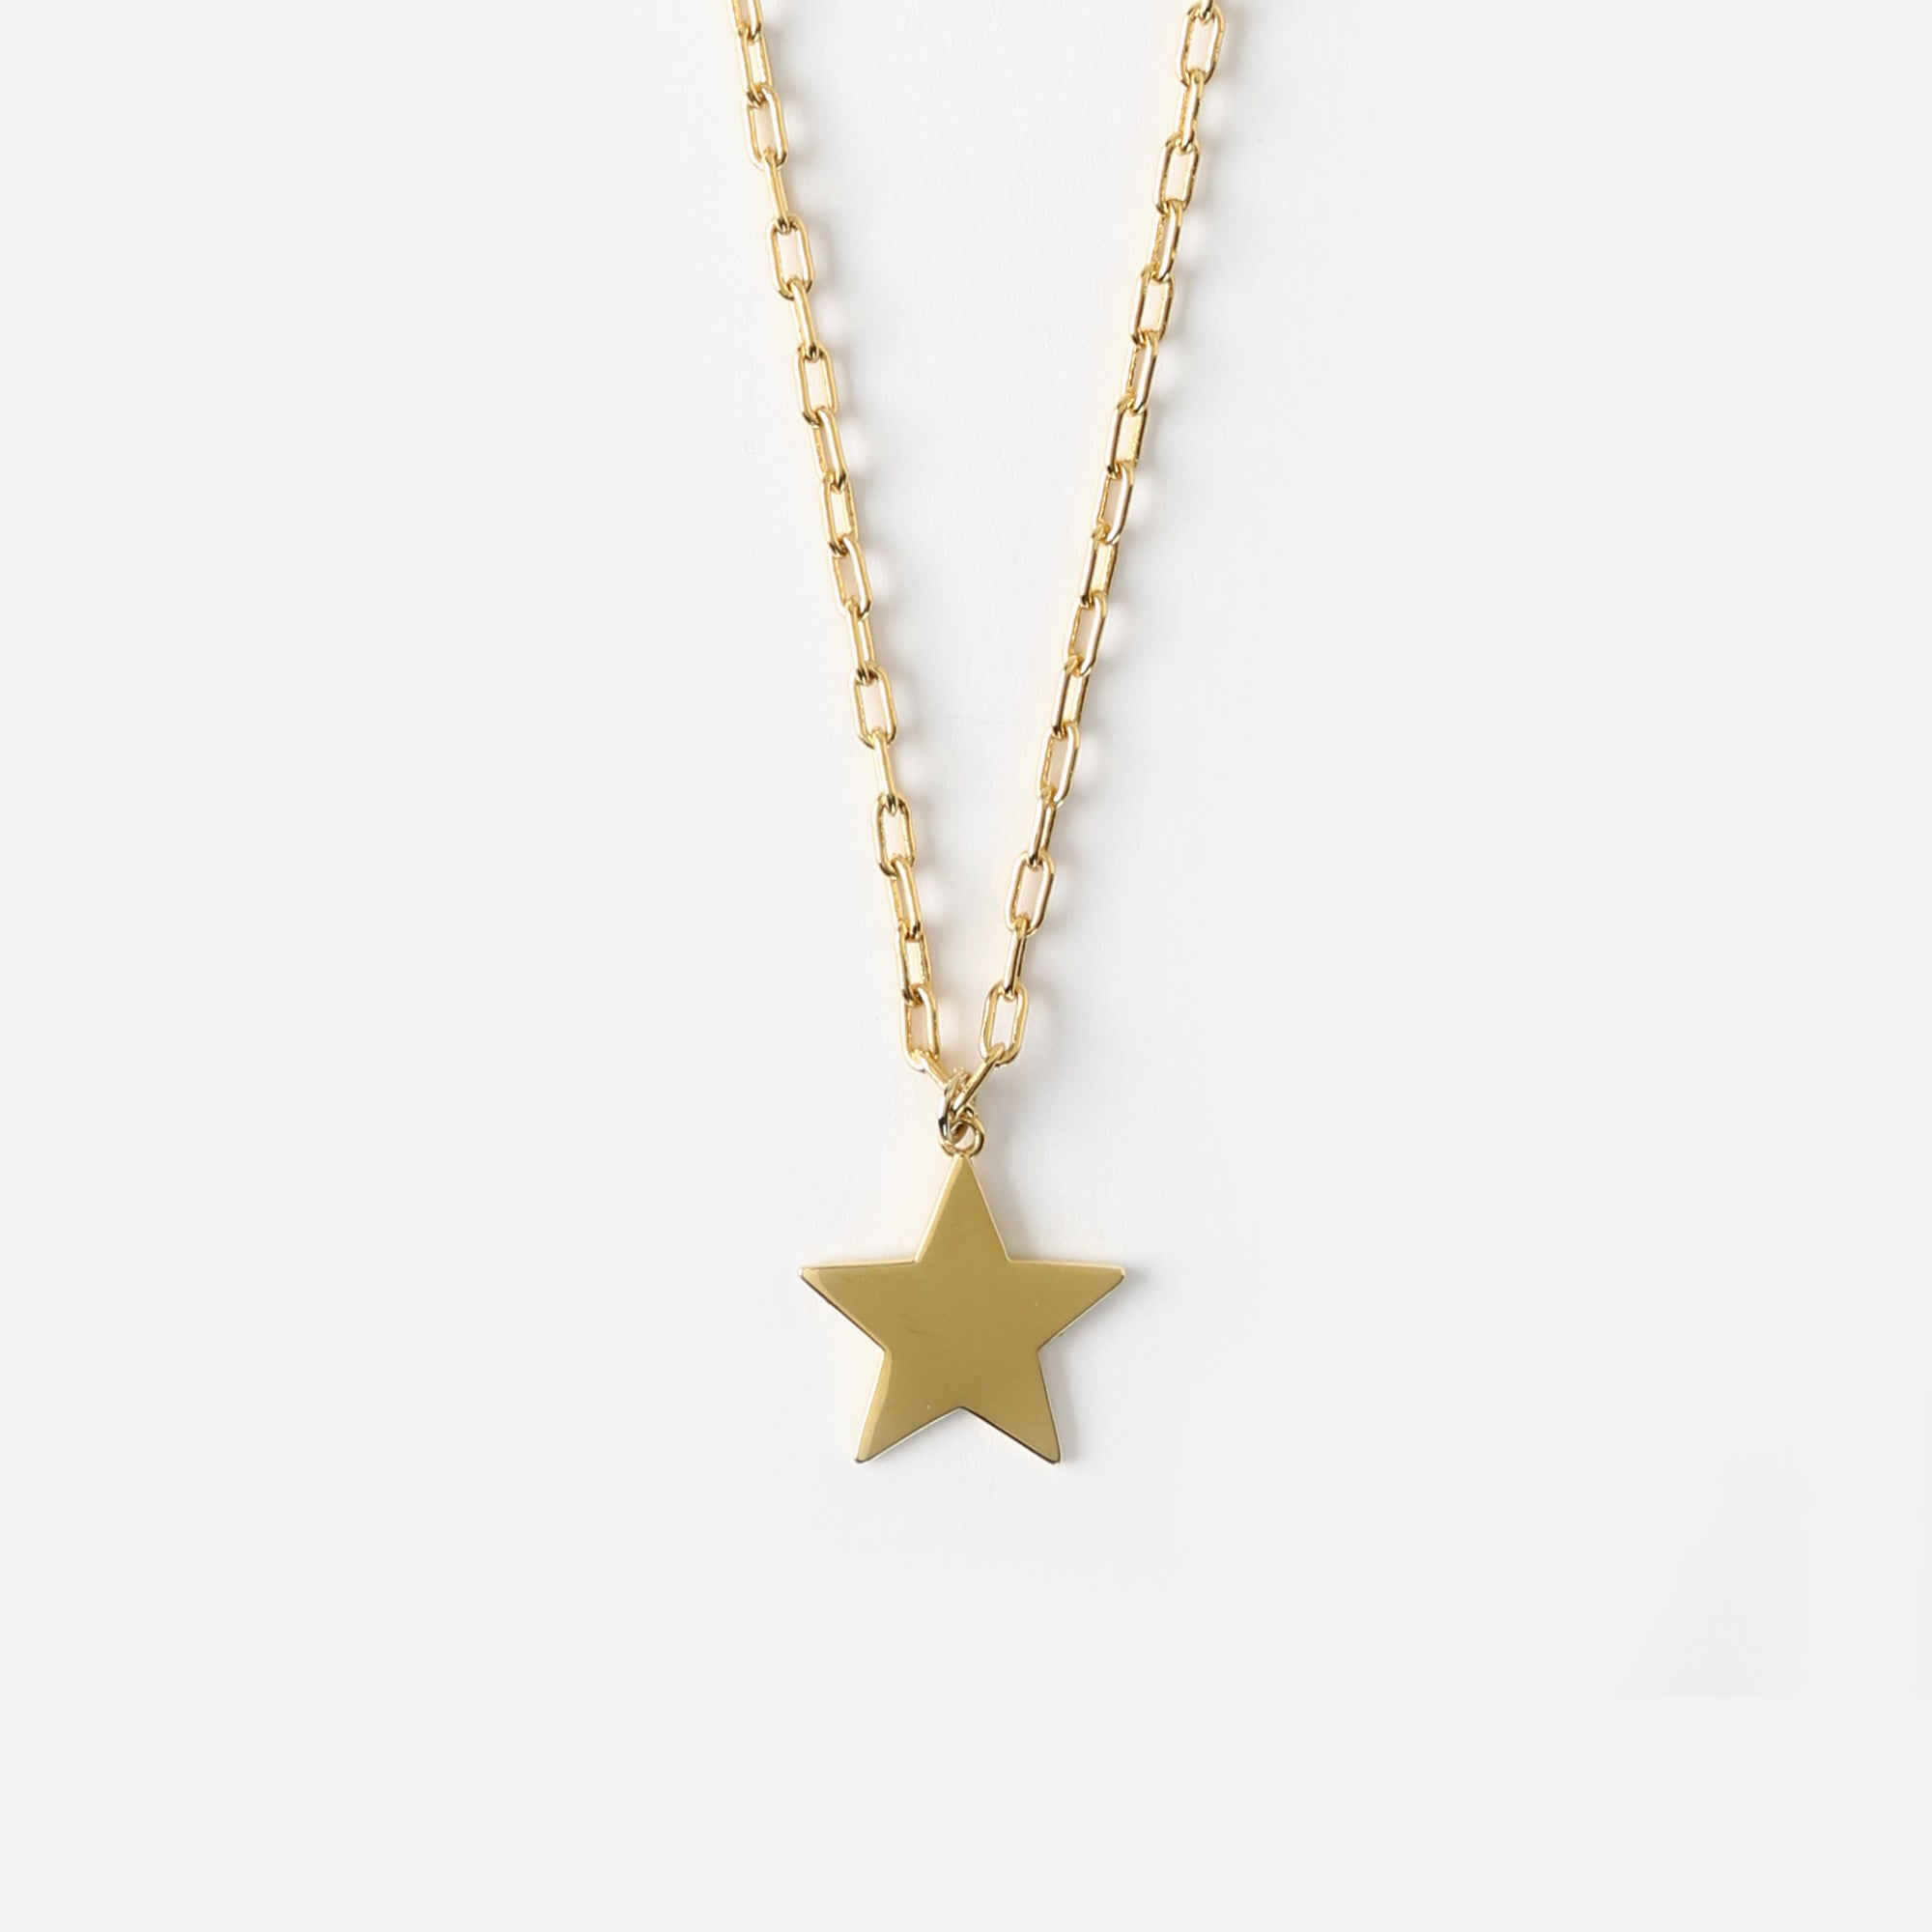 Star Charm Collar Length Necklace